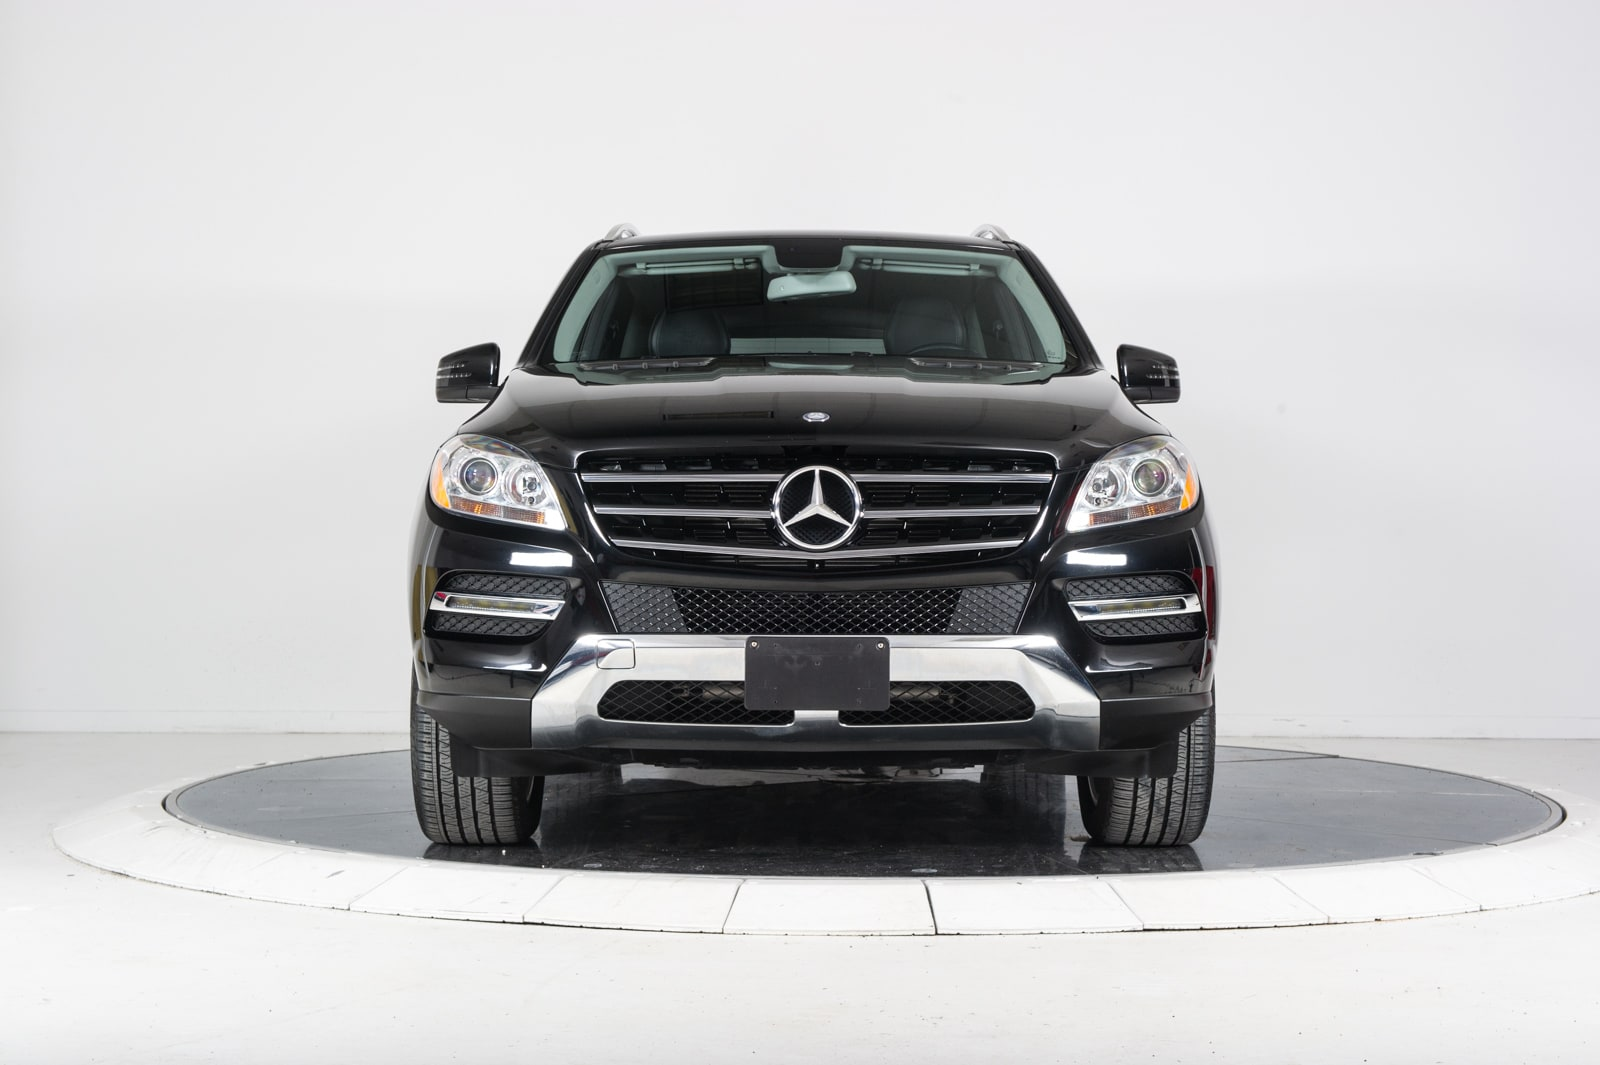 2013 mercedes benz ml350 4matic suv for sale in plainview ny at maserati of - Black Mercedes Benz Suv 2013